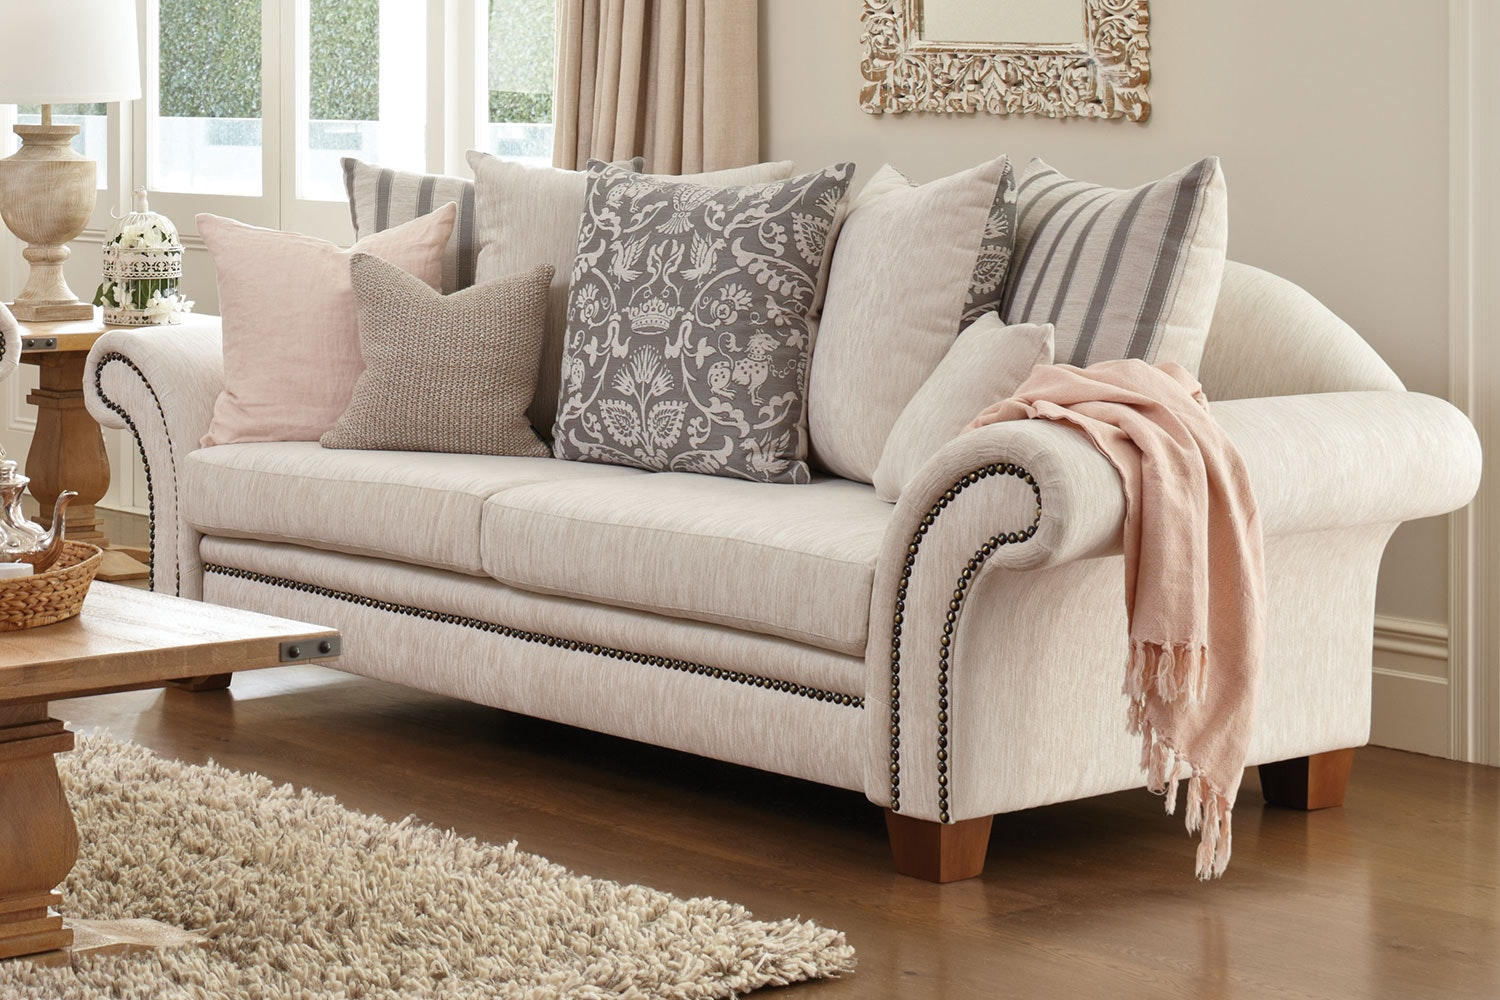 Westwood 3 Seater Fabric Sofa by Furniture Haven